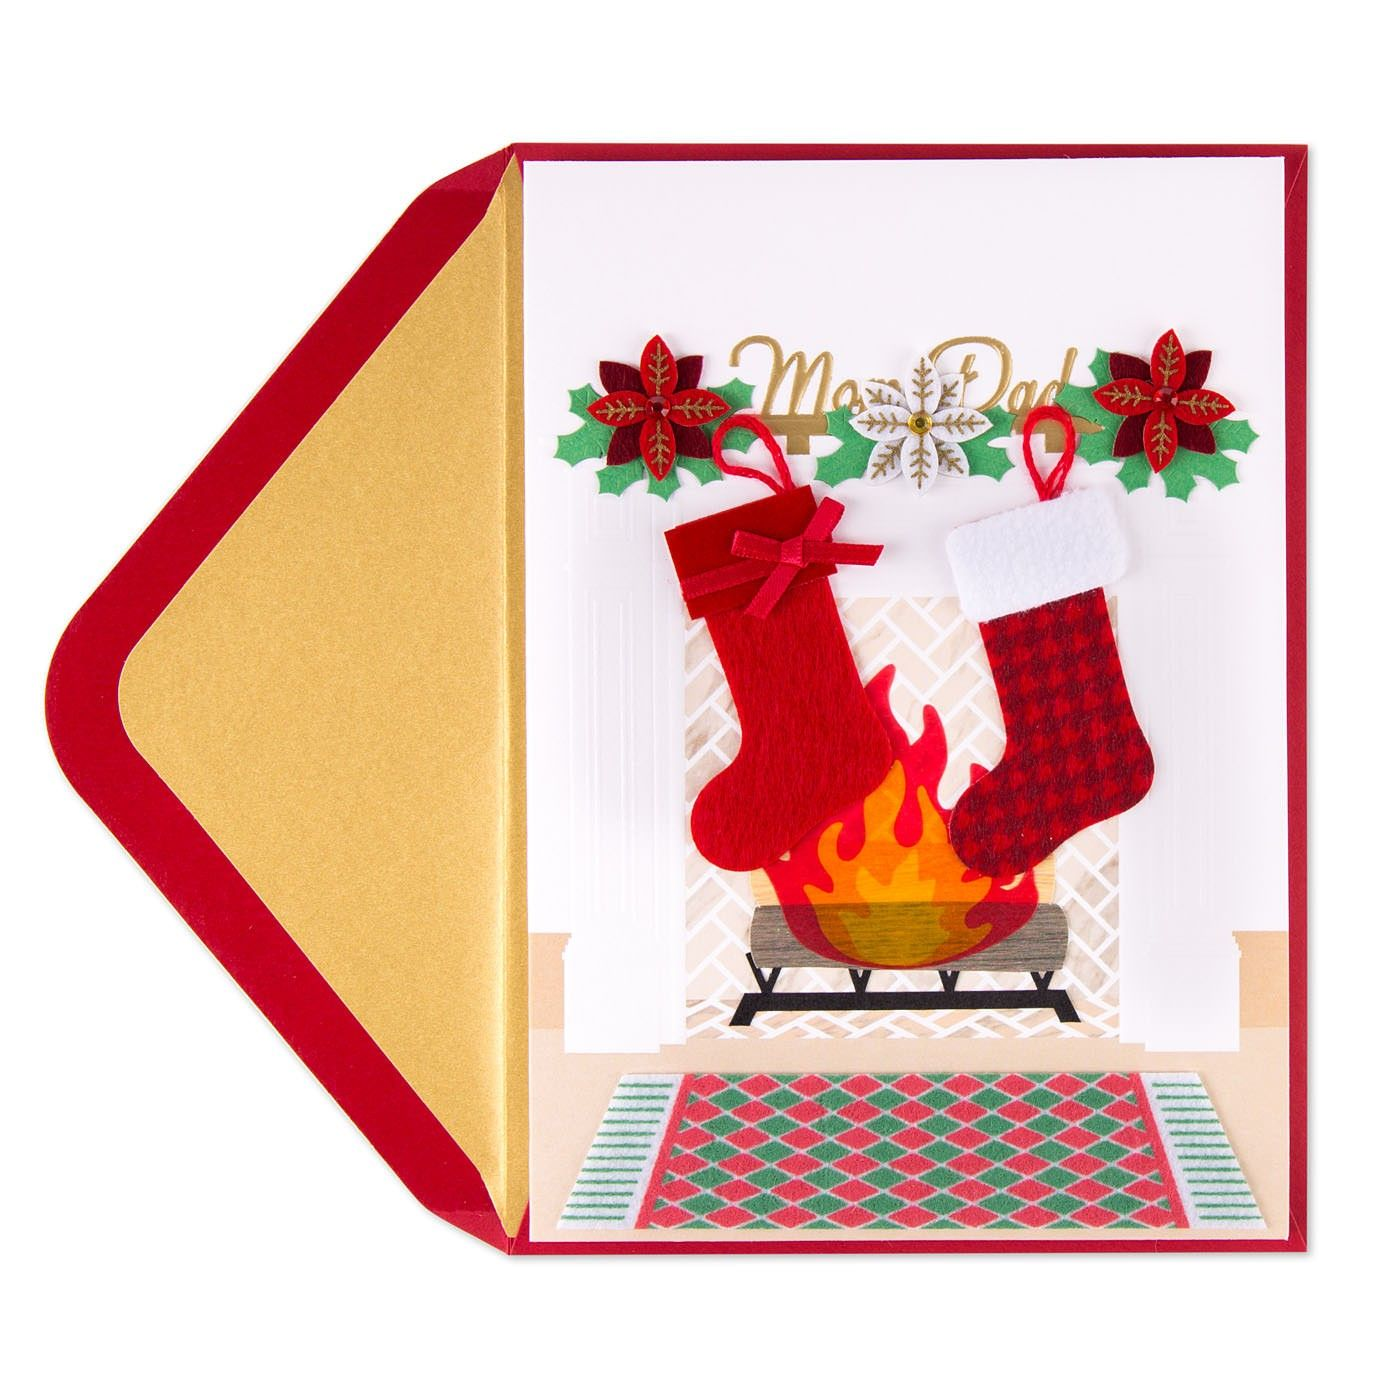 Mom Dad Stockings Christmas Card For Mom Dad Stockings Dads